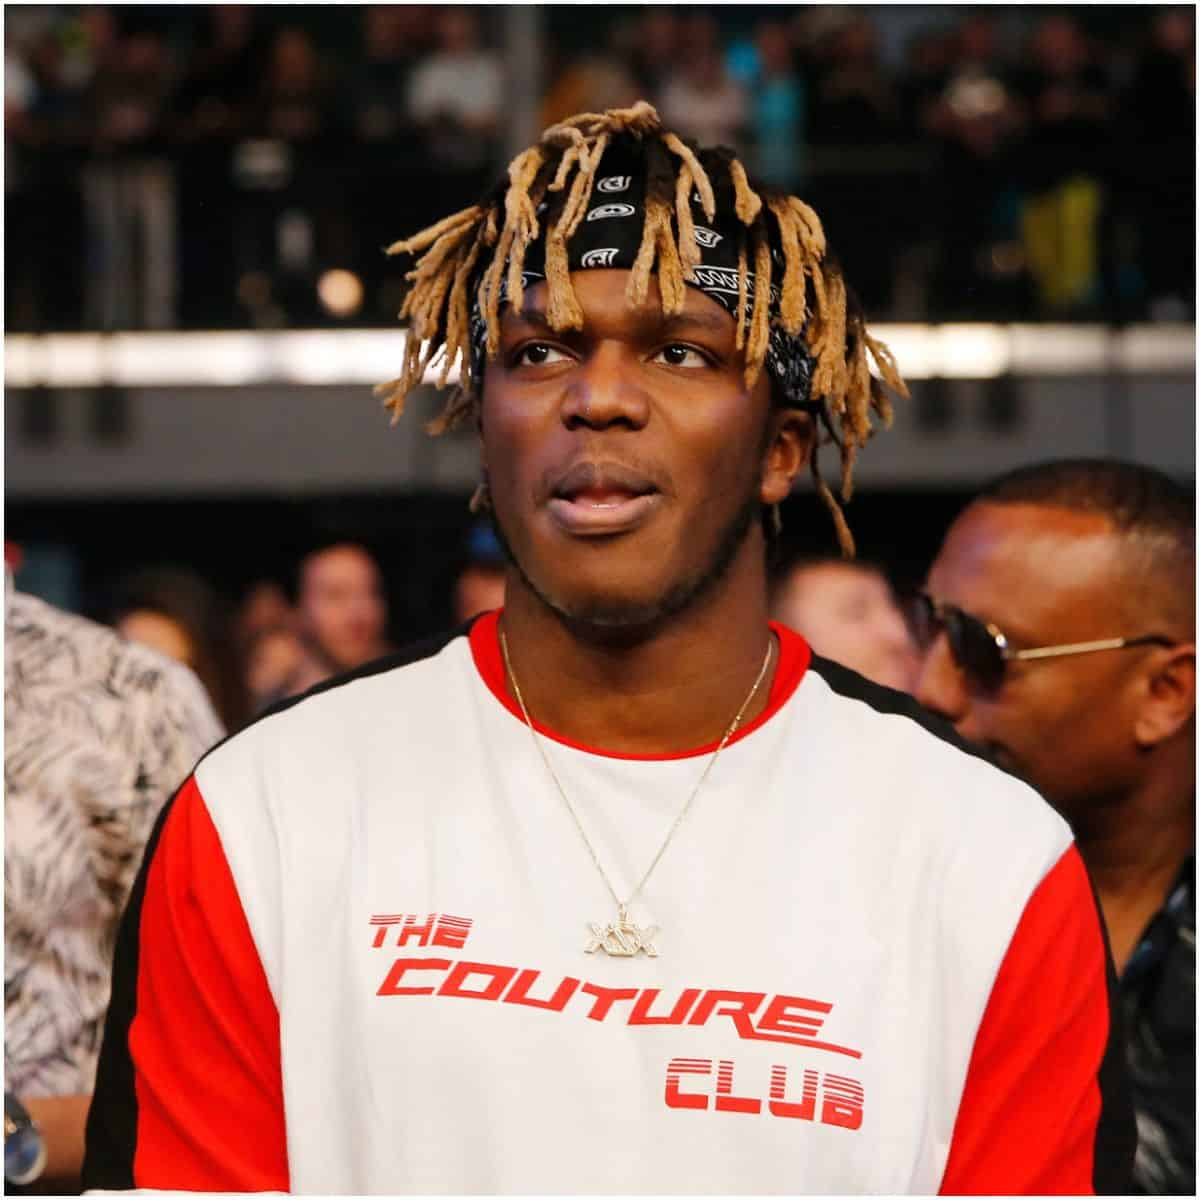 what is the net worth of KSI